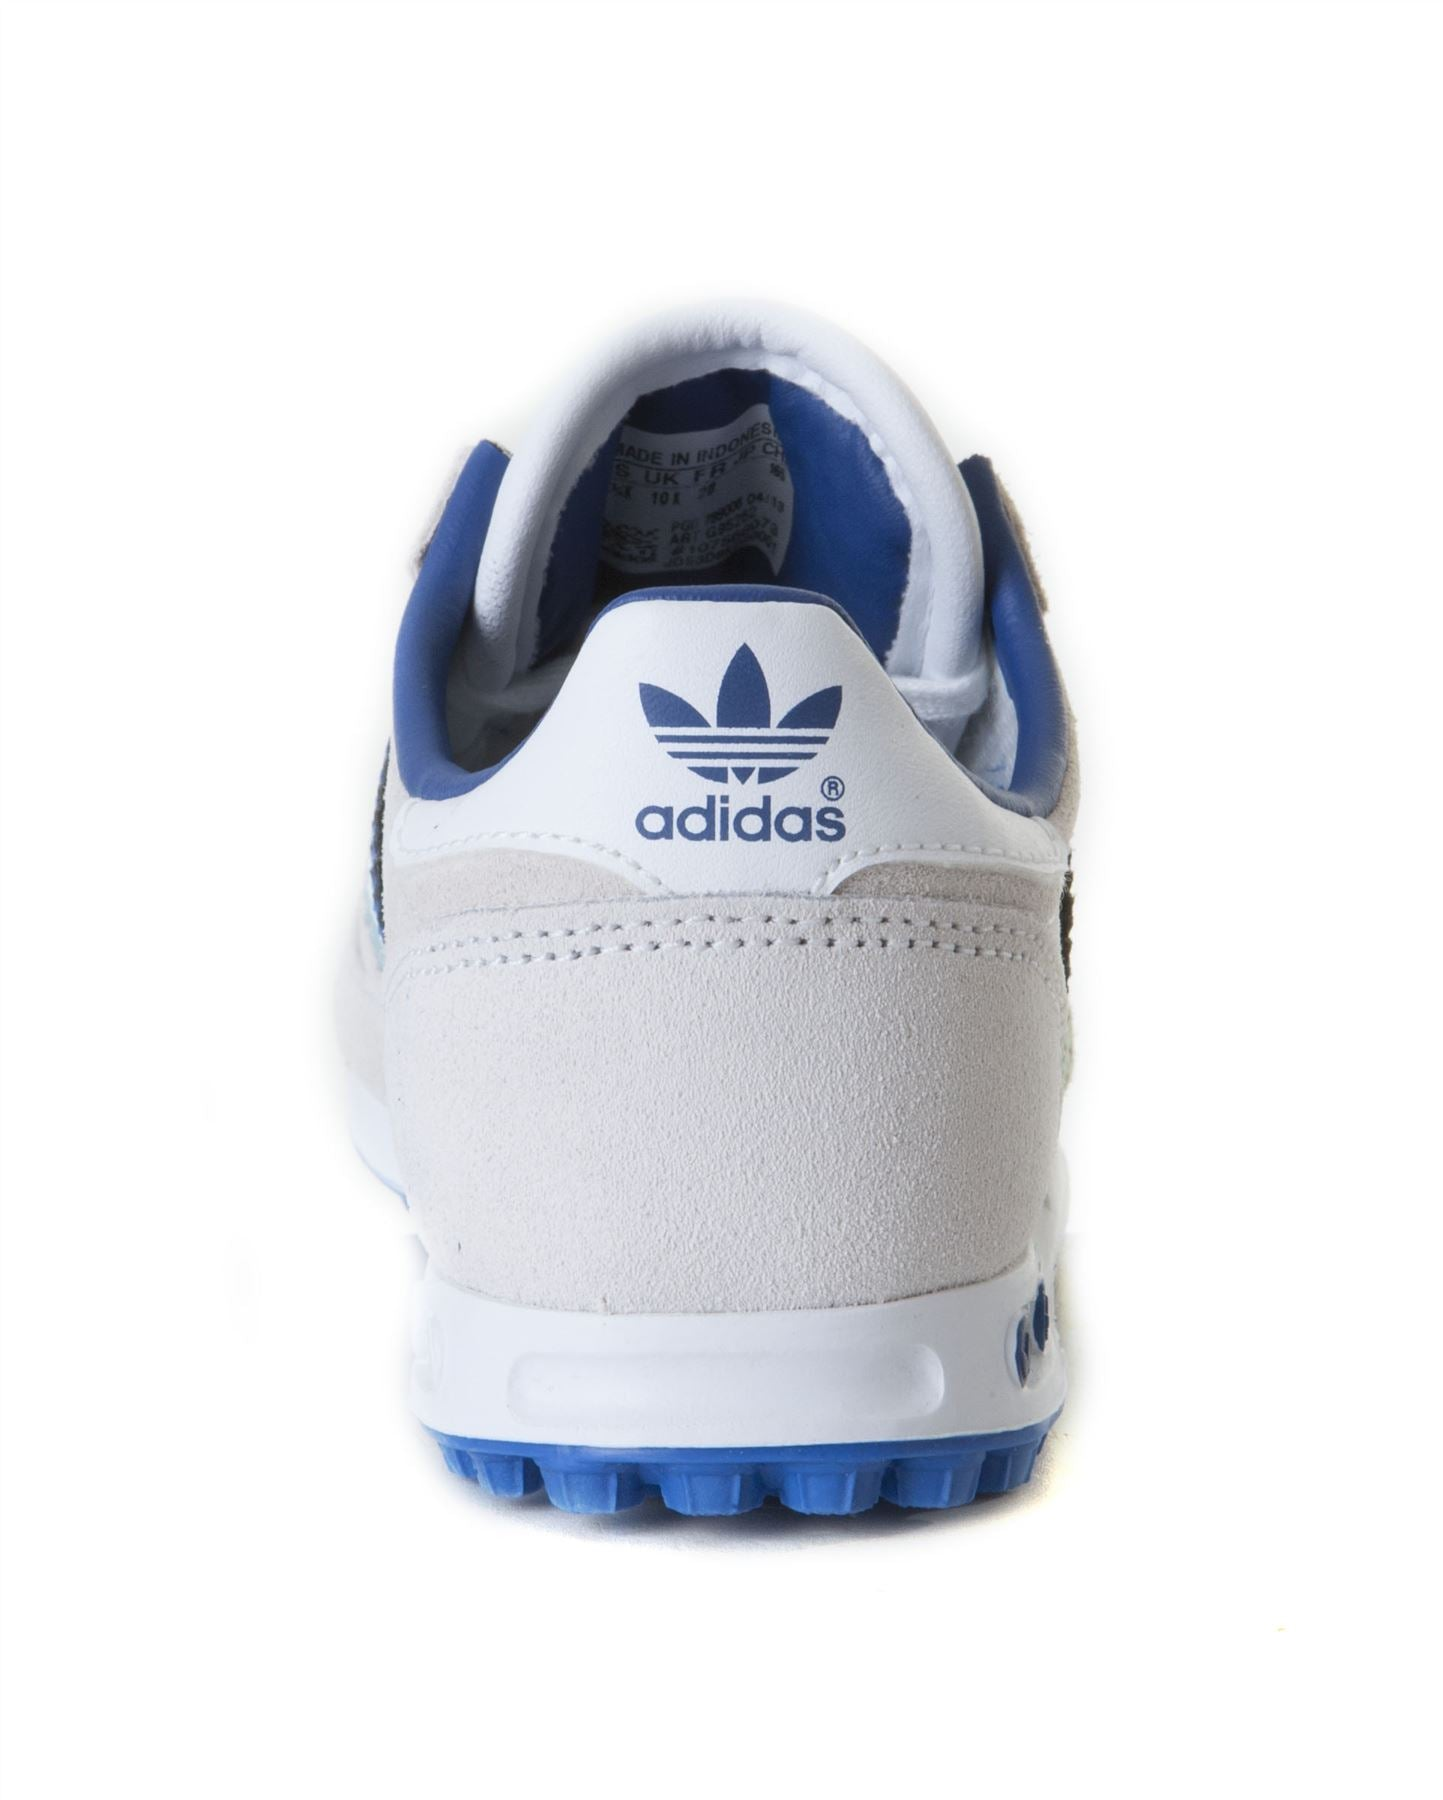 ADIDAS LA TRAINER K G95262 WHITE/BLUE